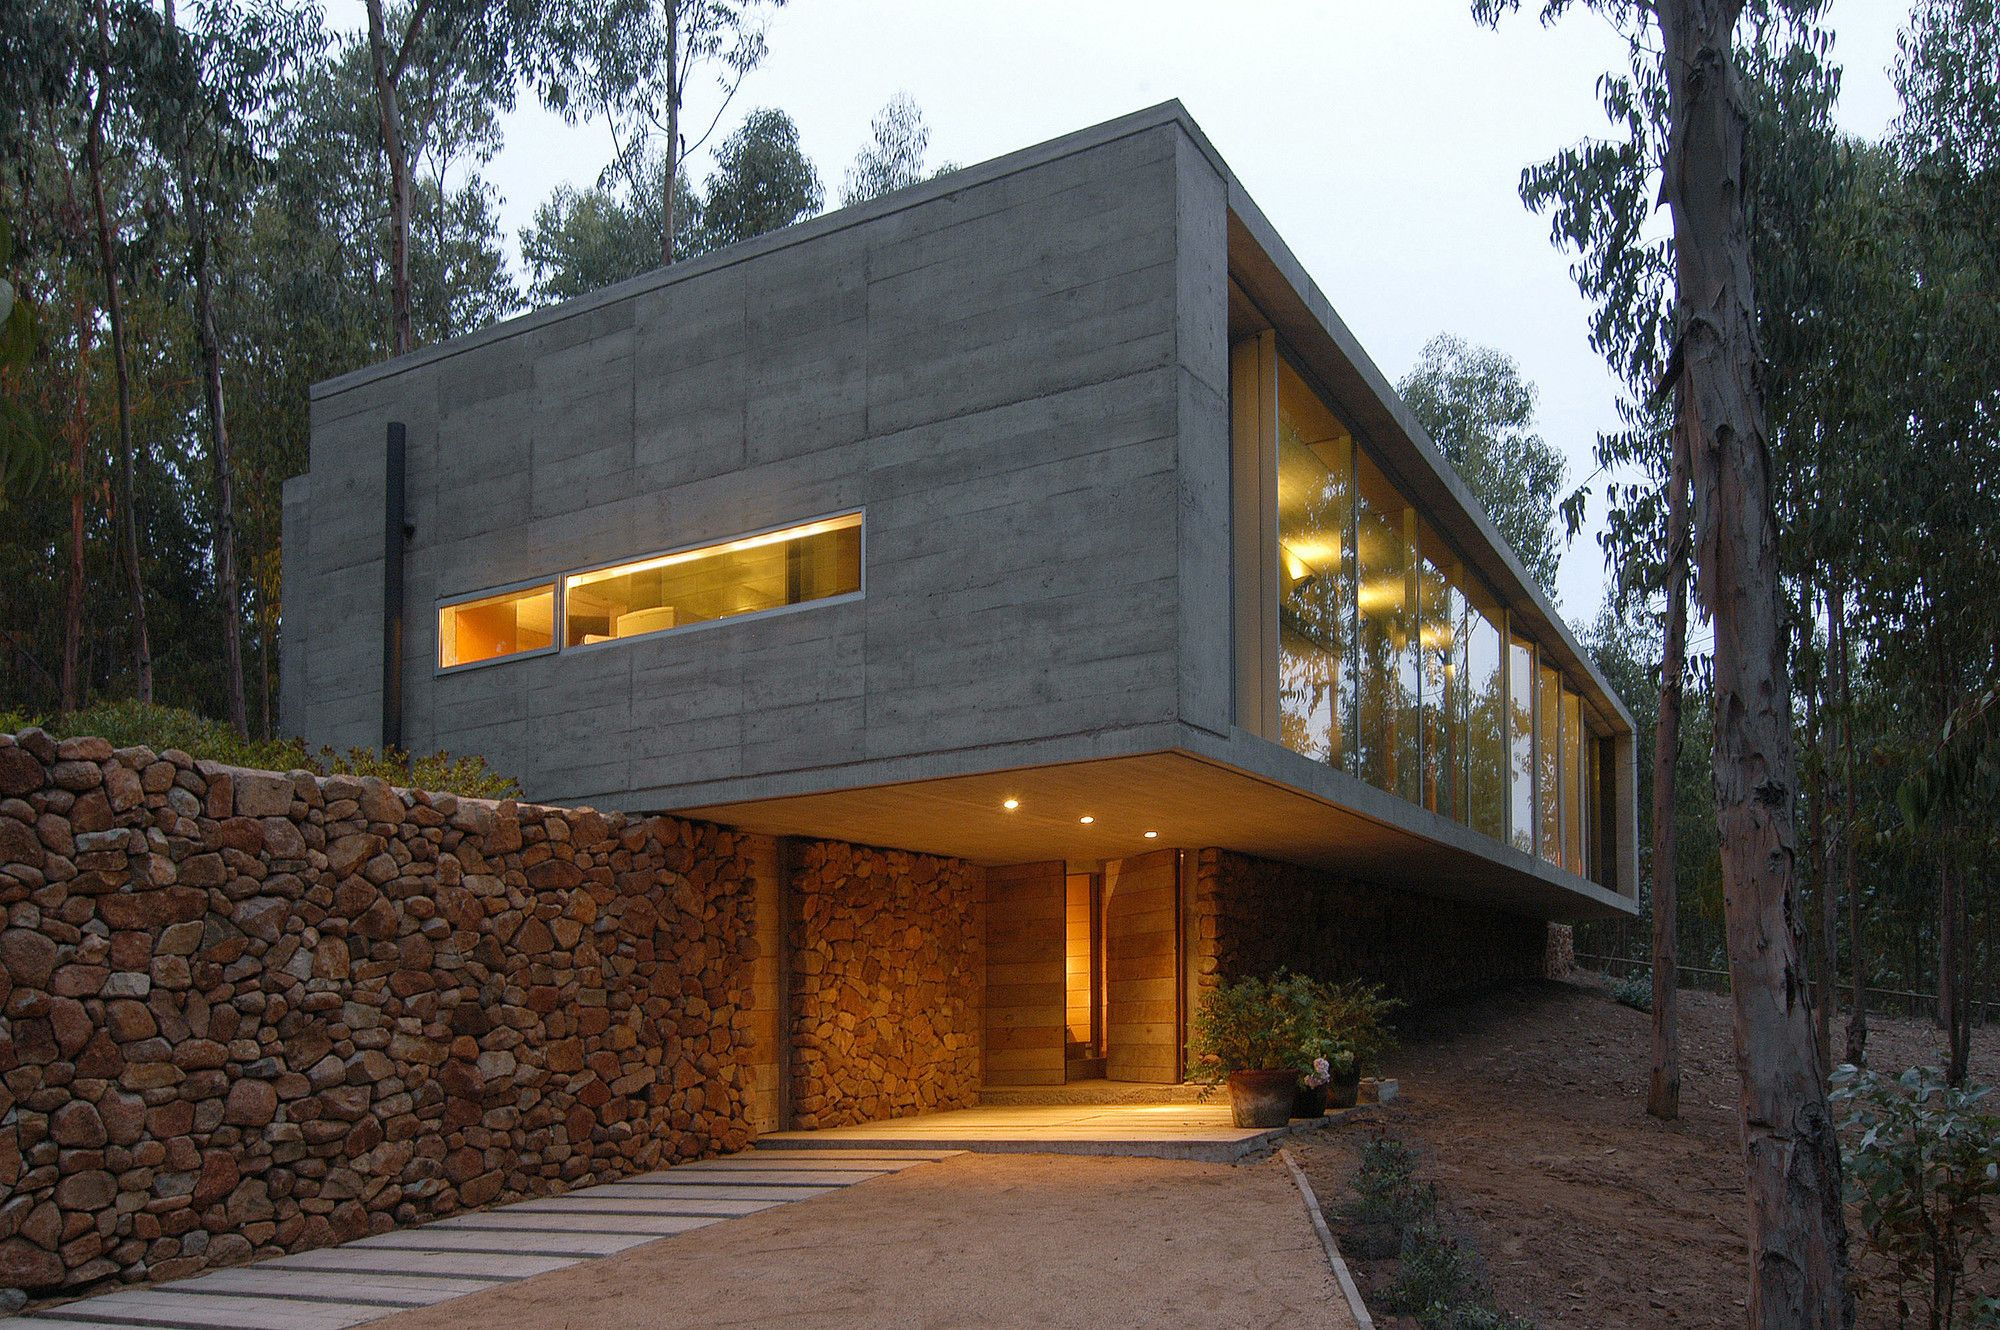 The Omnibus House Is Located In Close Proximity To The